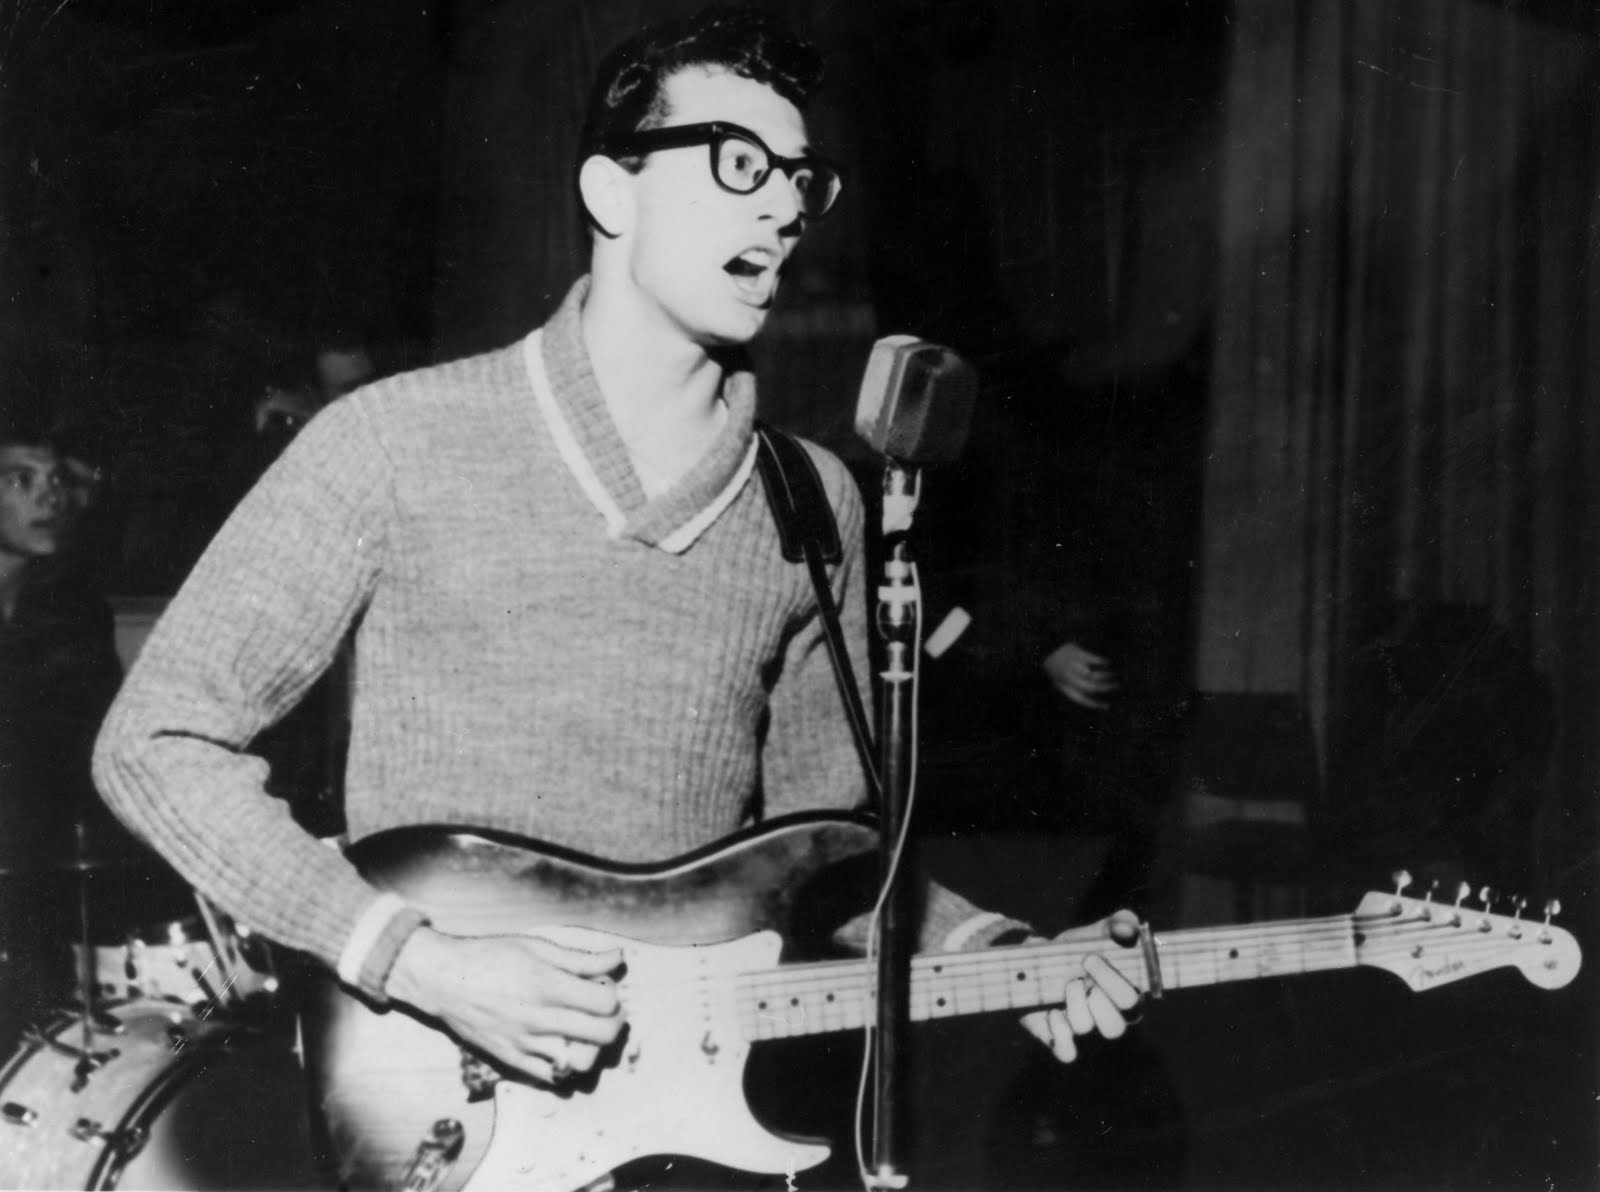 plane fire liverpool with Buddy Holly 75th Birthday Celebrations on 10 Funny Memes To Make You Smile furthermore Cool Backgrounds For Desktop furthermore Buddy Holly 75th Birthday Celebrations moreover Battle Of Britain Devastation In Coventry further Jewel Husband Ty Murray T n 5554625.